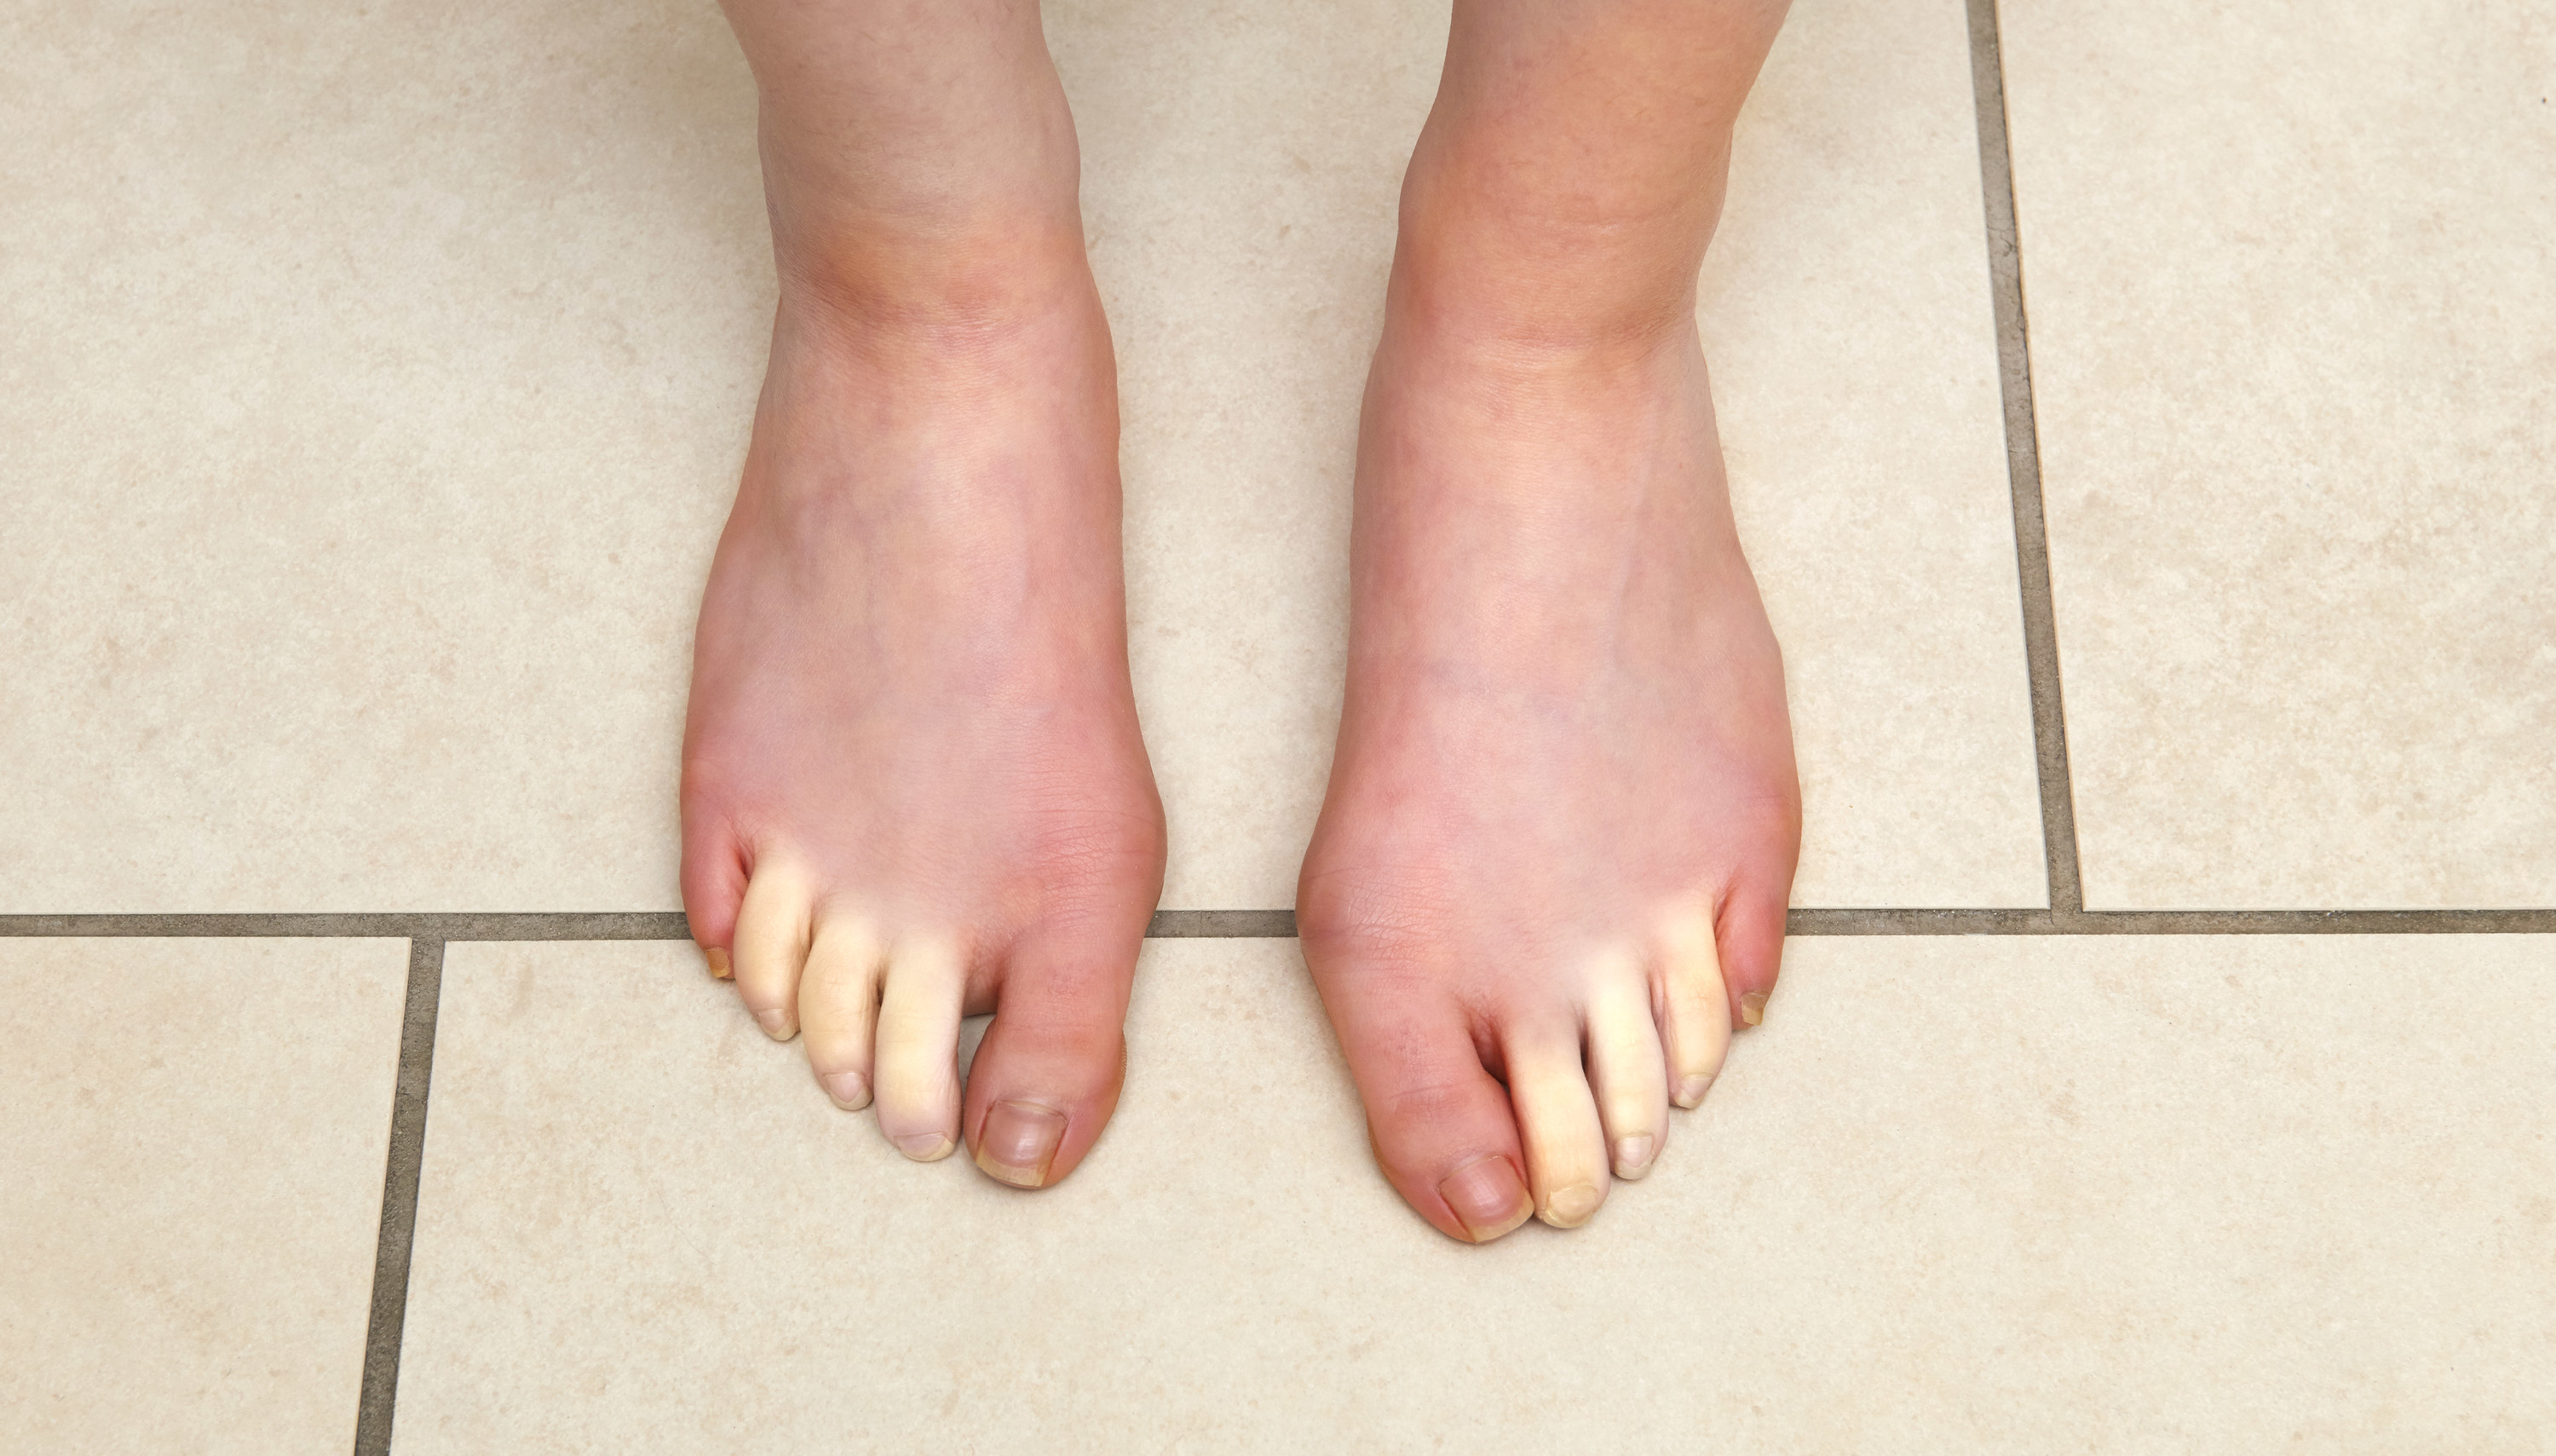 A person with Raynaud's phenomenon